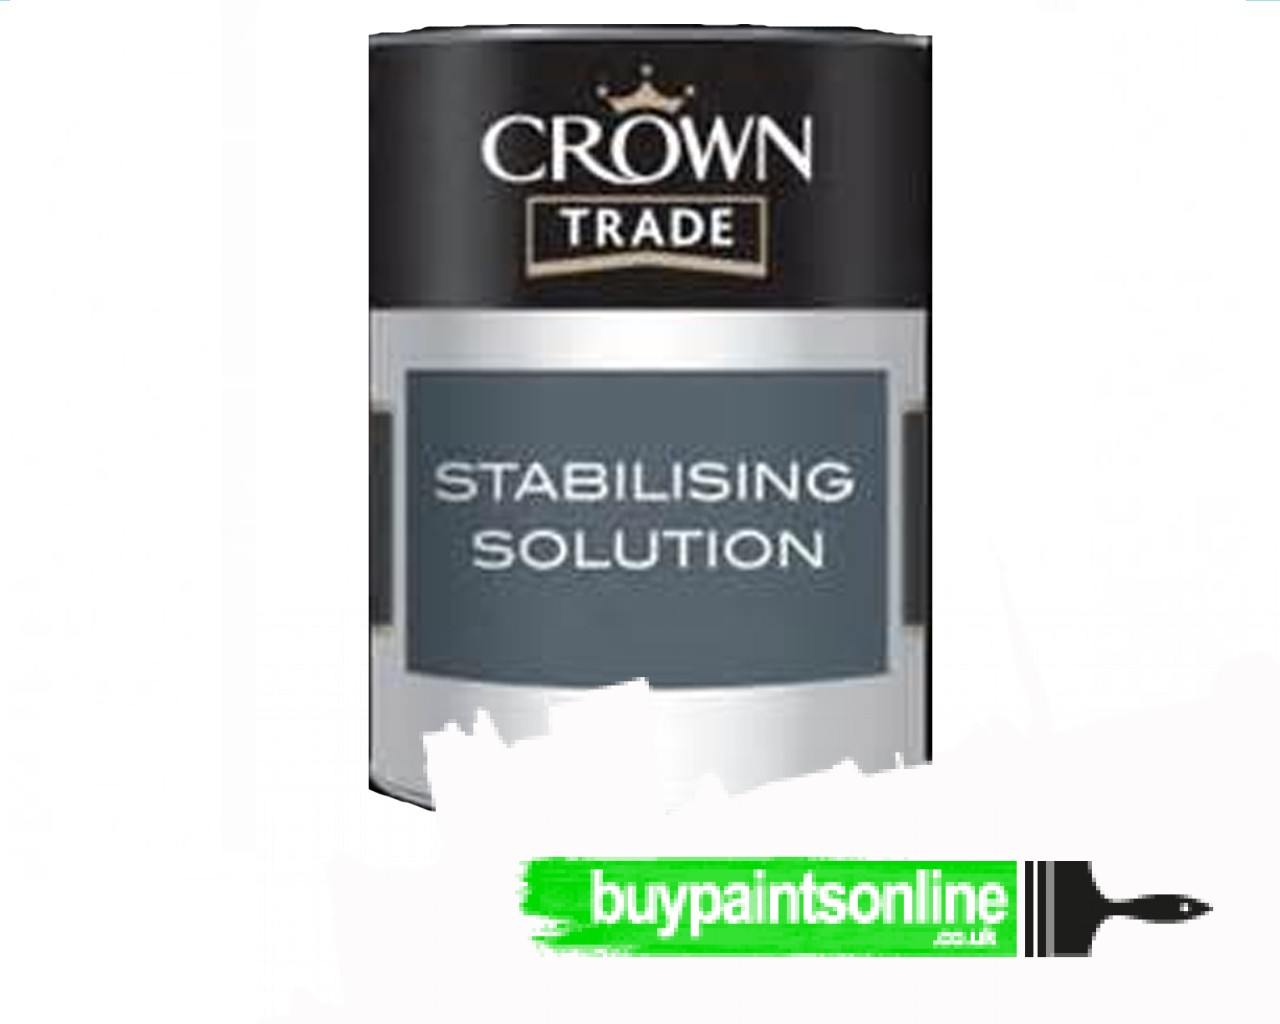 Stabilising Solution Crown Trade Primer Primers Buy Paints Online